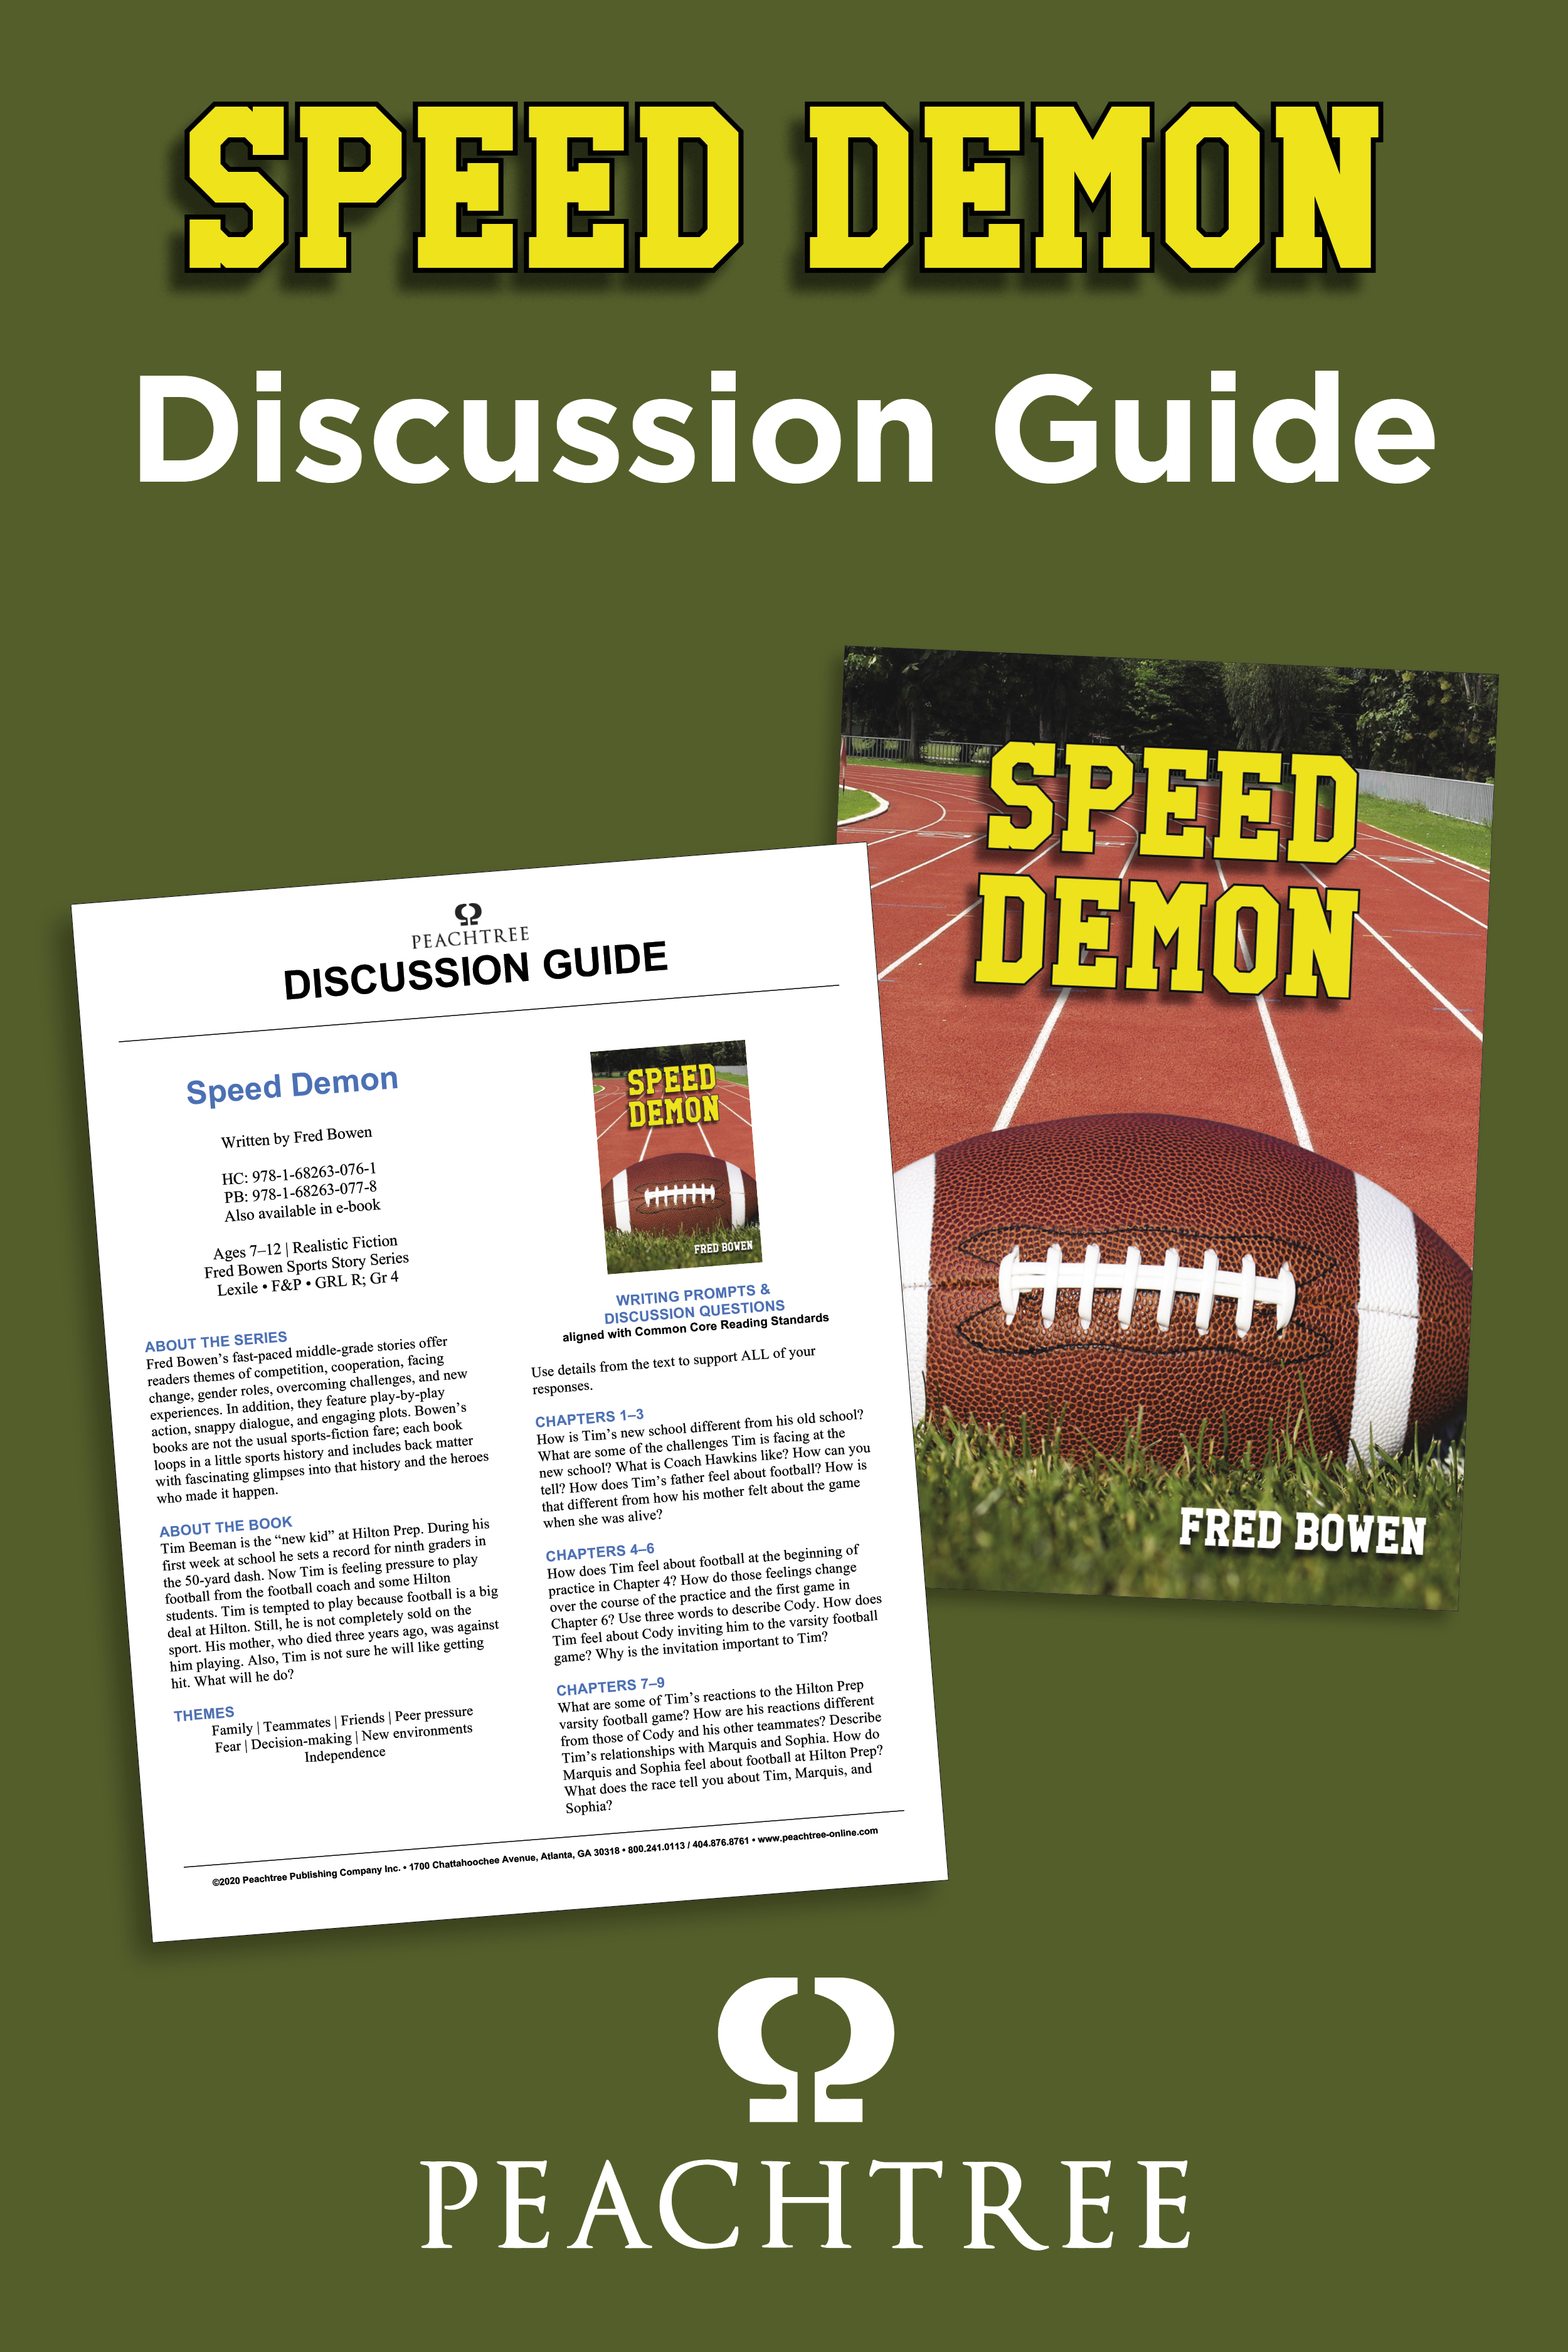 Speed Demon Discussion Guide Graphic